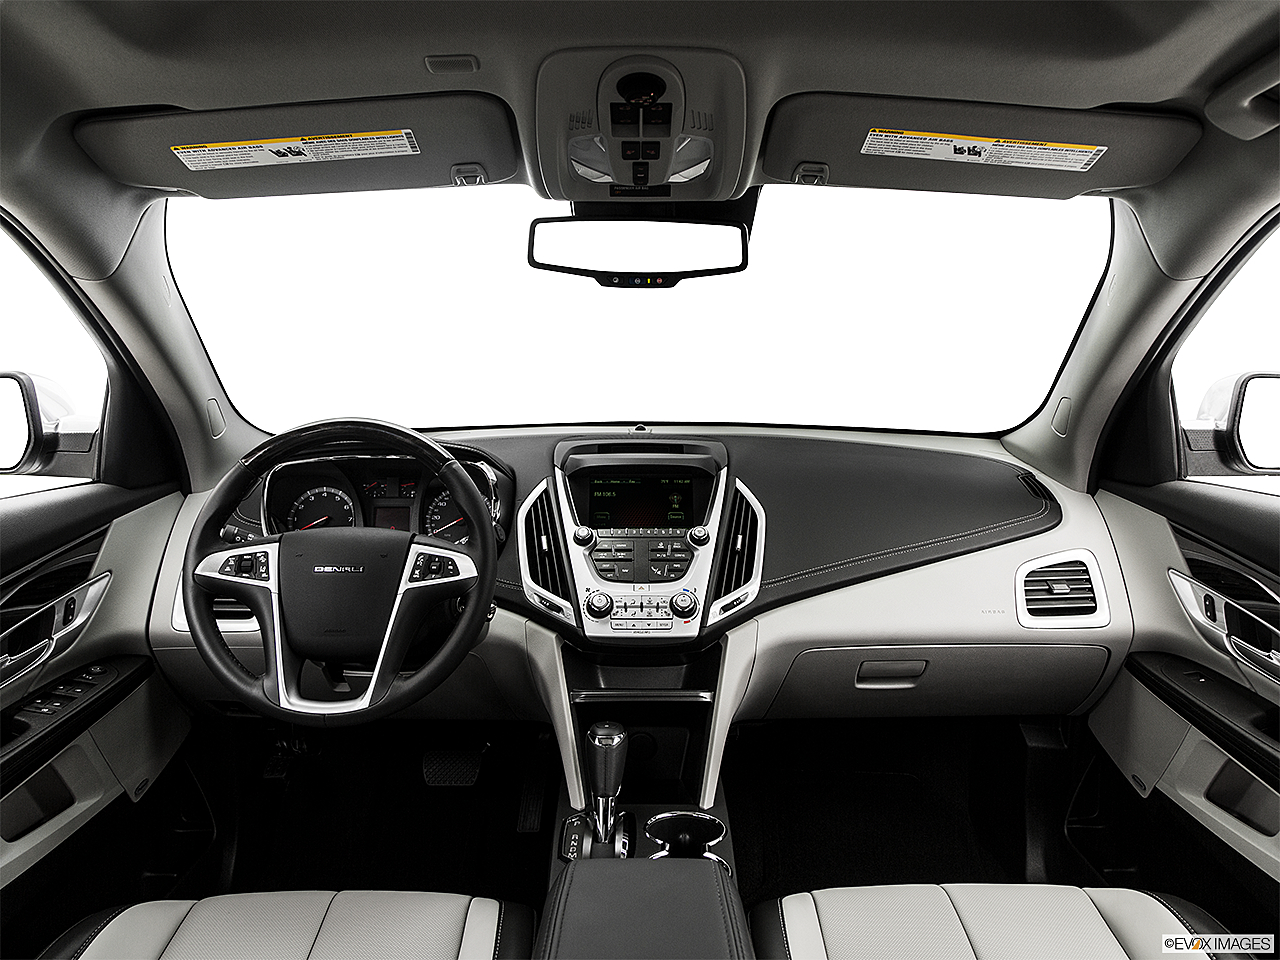 2017 Gmc Terrain Denali Centered Wide Dash Shot